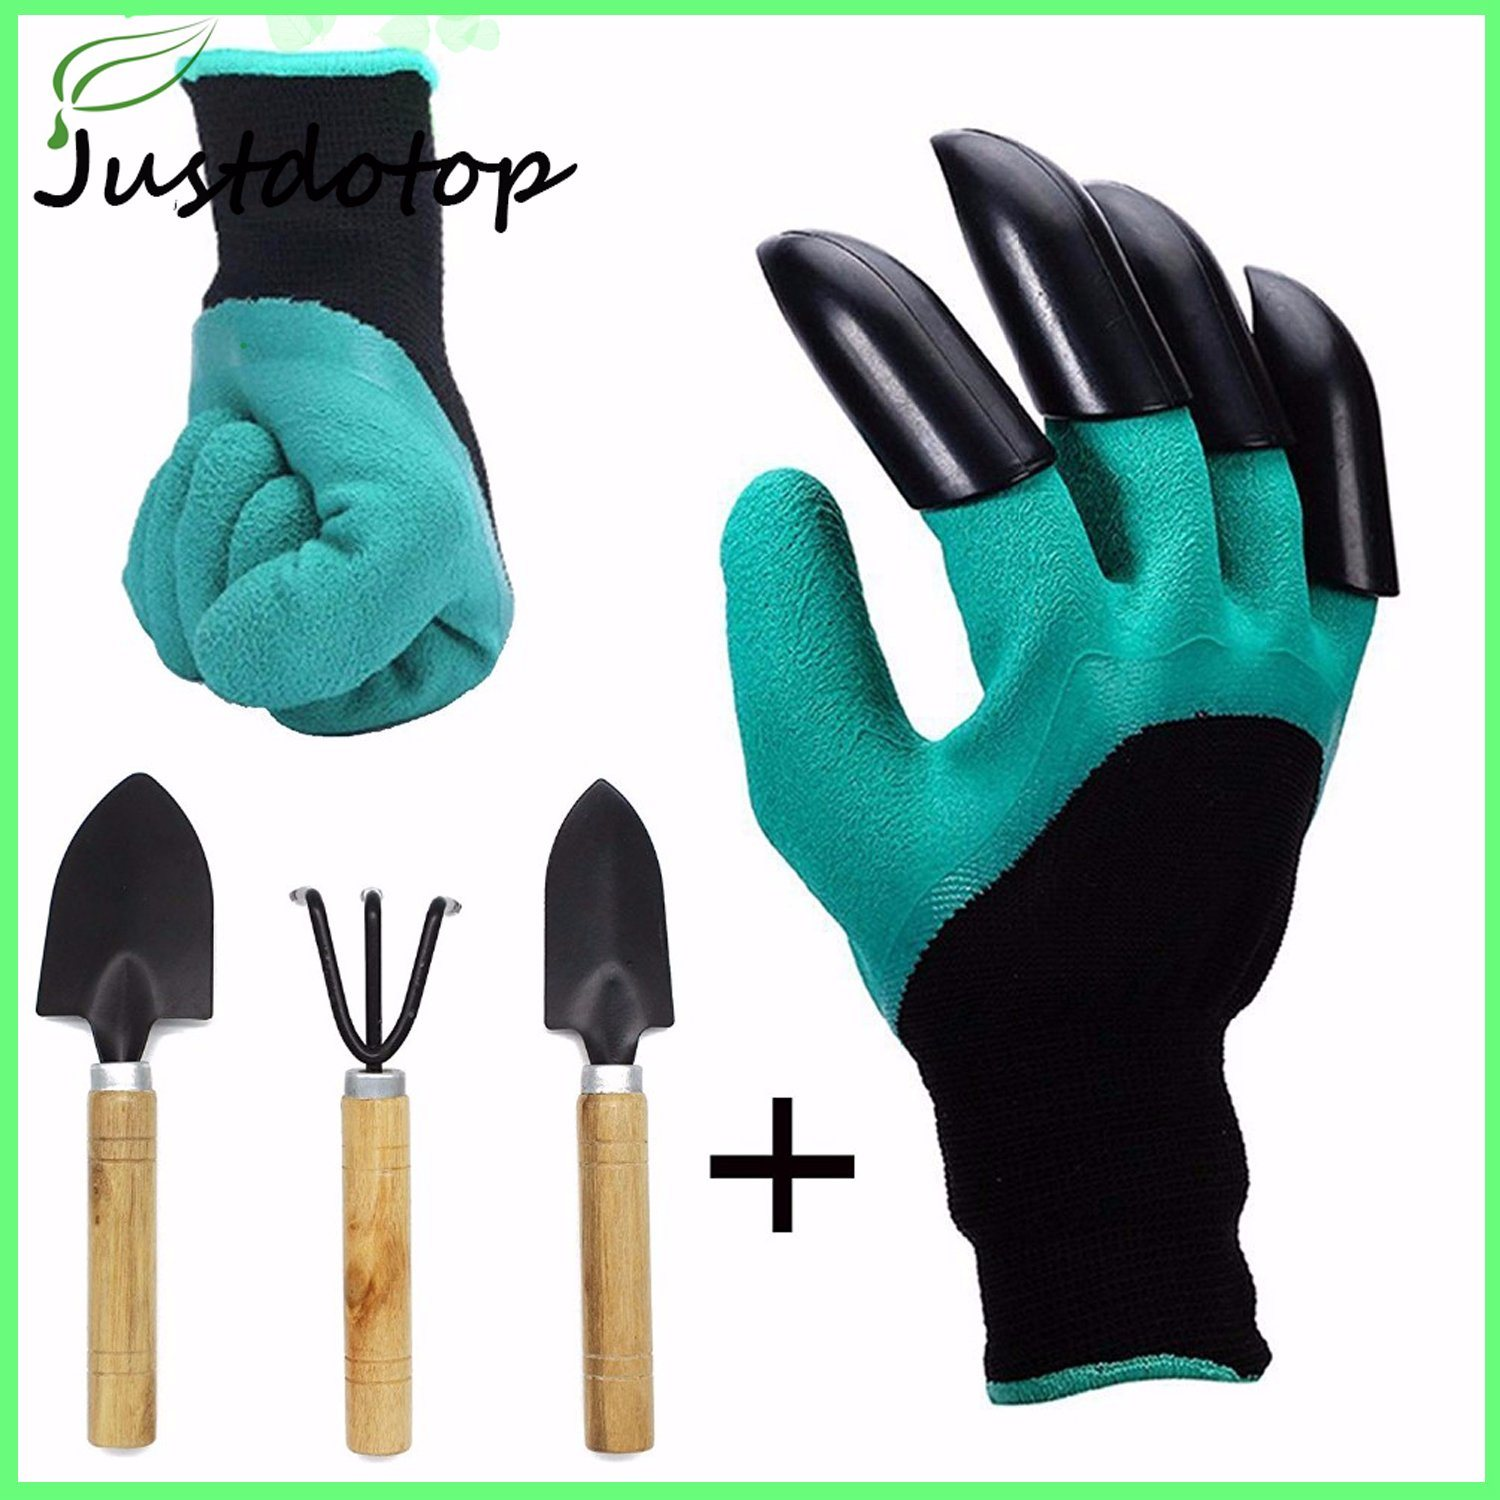 Hot Item Garden Genie Gloves With Claws And Extra 3 Pc Small Mini Tools